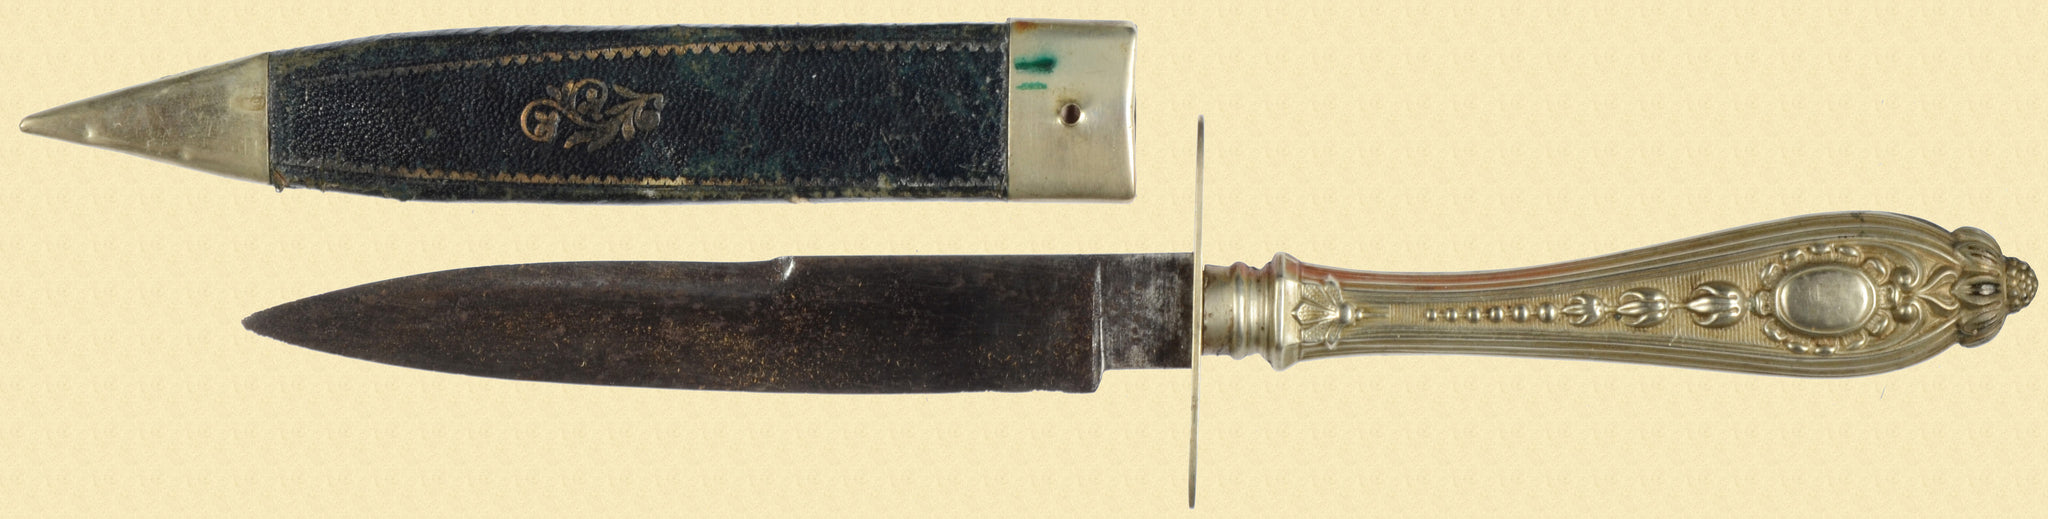 J. HOBSON SMALL ENGLISH BOWIE